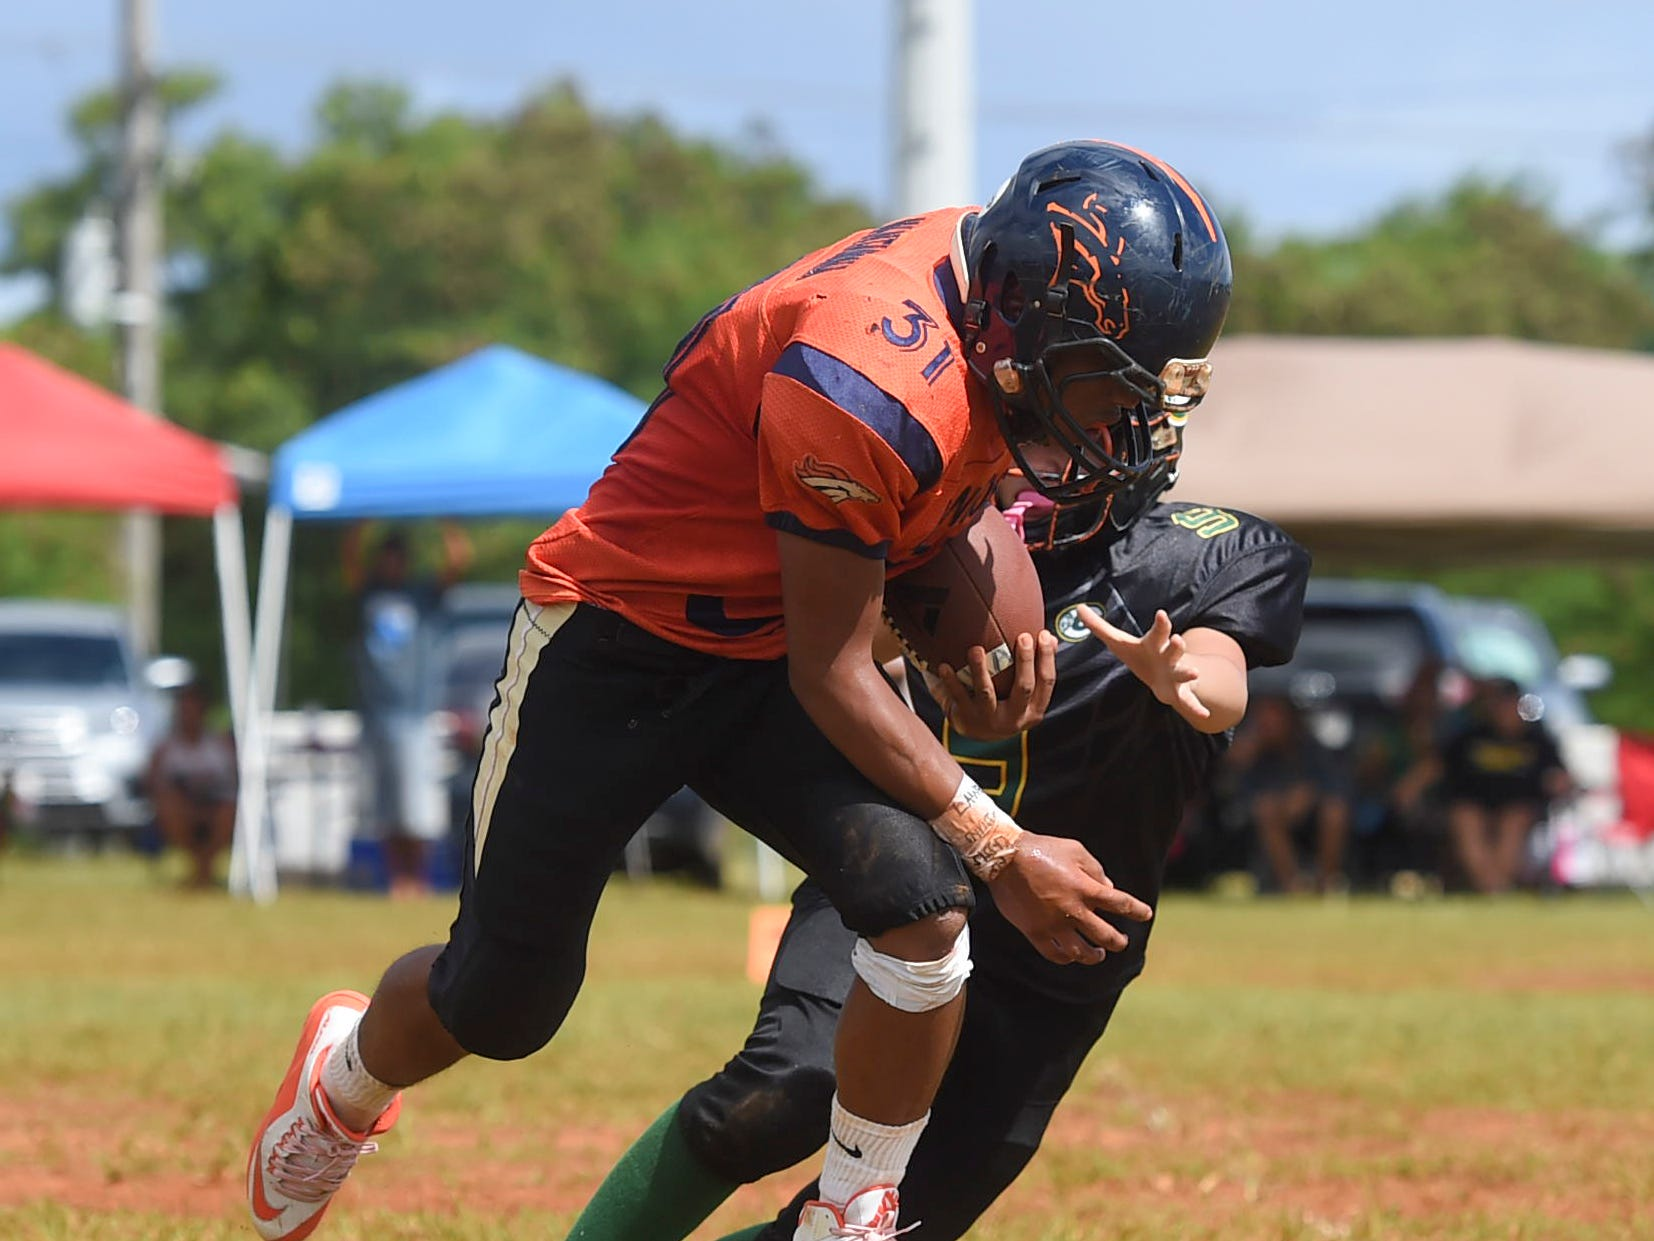 Cinnabon Island Broncos' Francisco Mantanona (31) makes an athletic move to elude a Guam Packers player during their Guam National Youth Football Federation Matua division game at the Mikkel Tan I. Vy Field in Tiyan on Sept. 2, 2018.during their Guam National Youth Football Federation Matua division game at the Mikkel Tan I. Vy Field in Tiyan on Sept. 2, 2018.